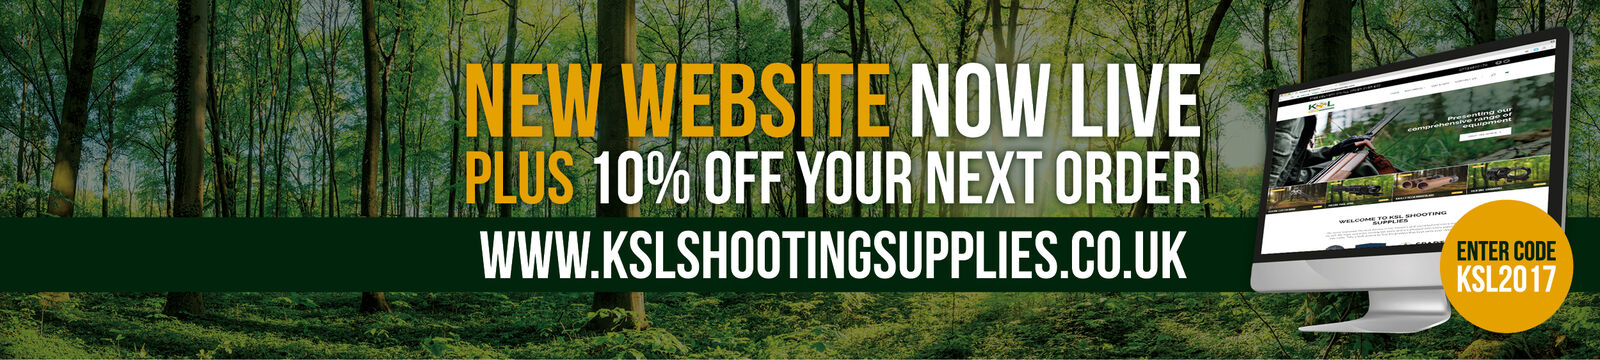 KSL SHOOTING SUPPLIES